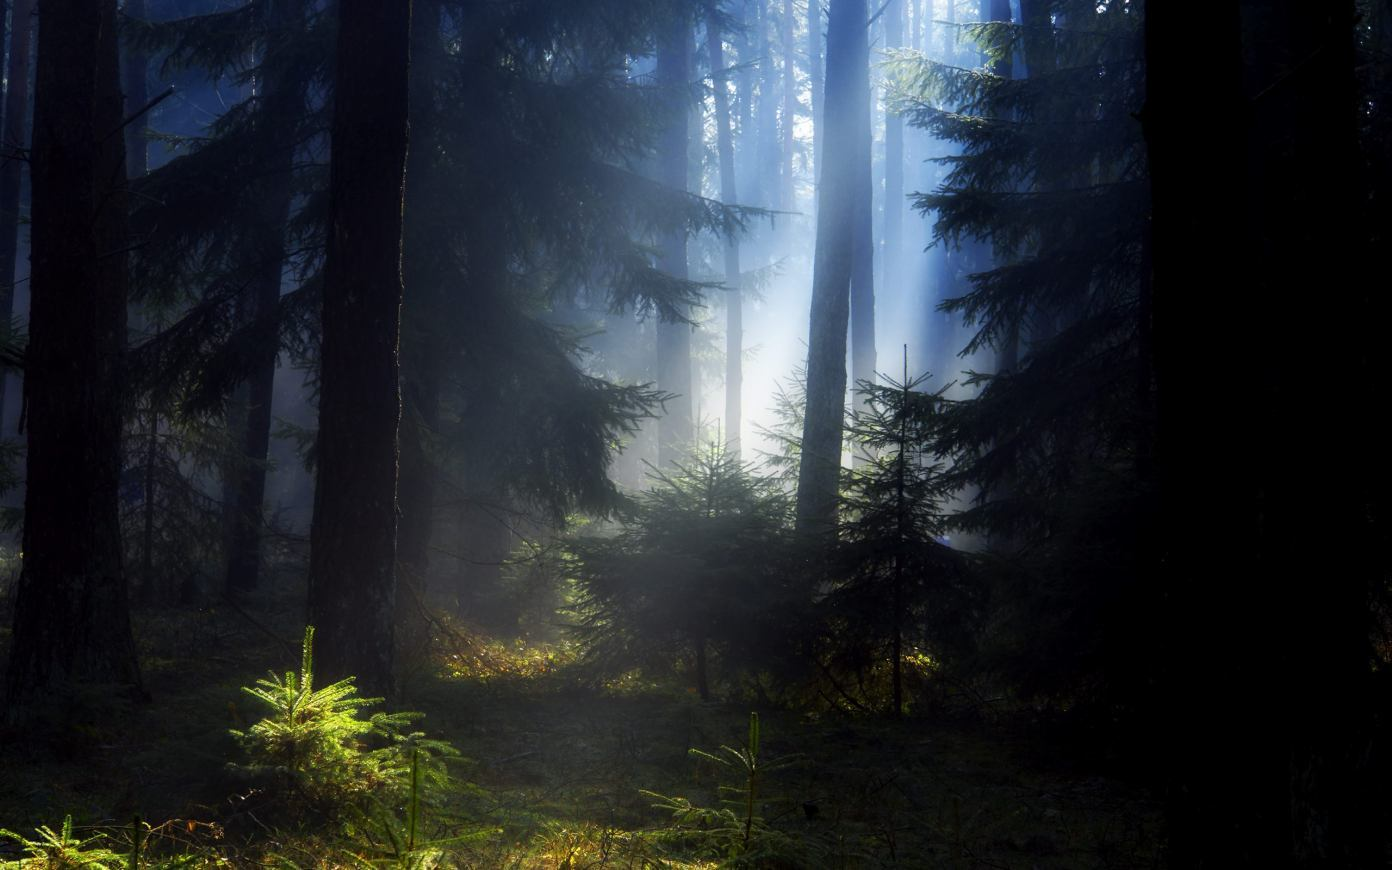 Earth_forest_110225